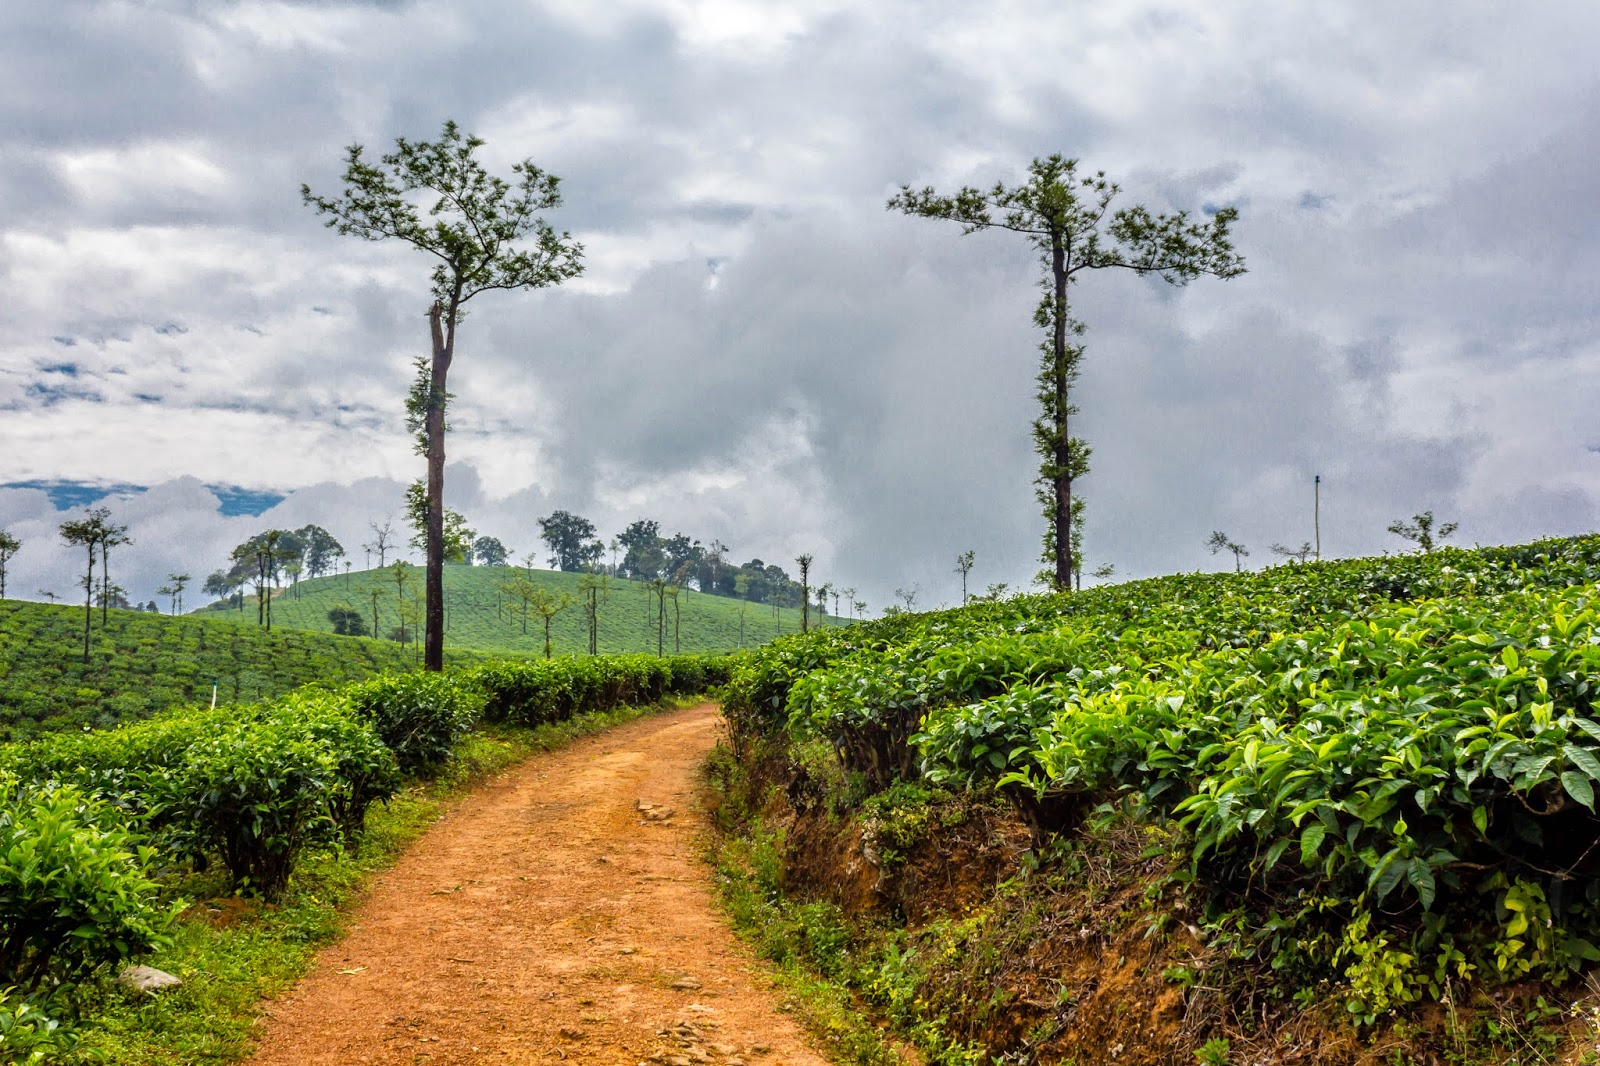 Path to Nallamudi Punjolai in between tea plantations